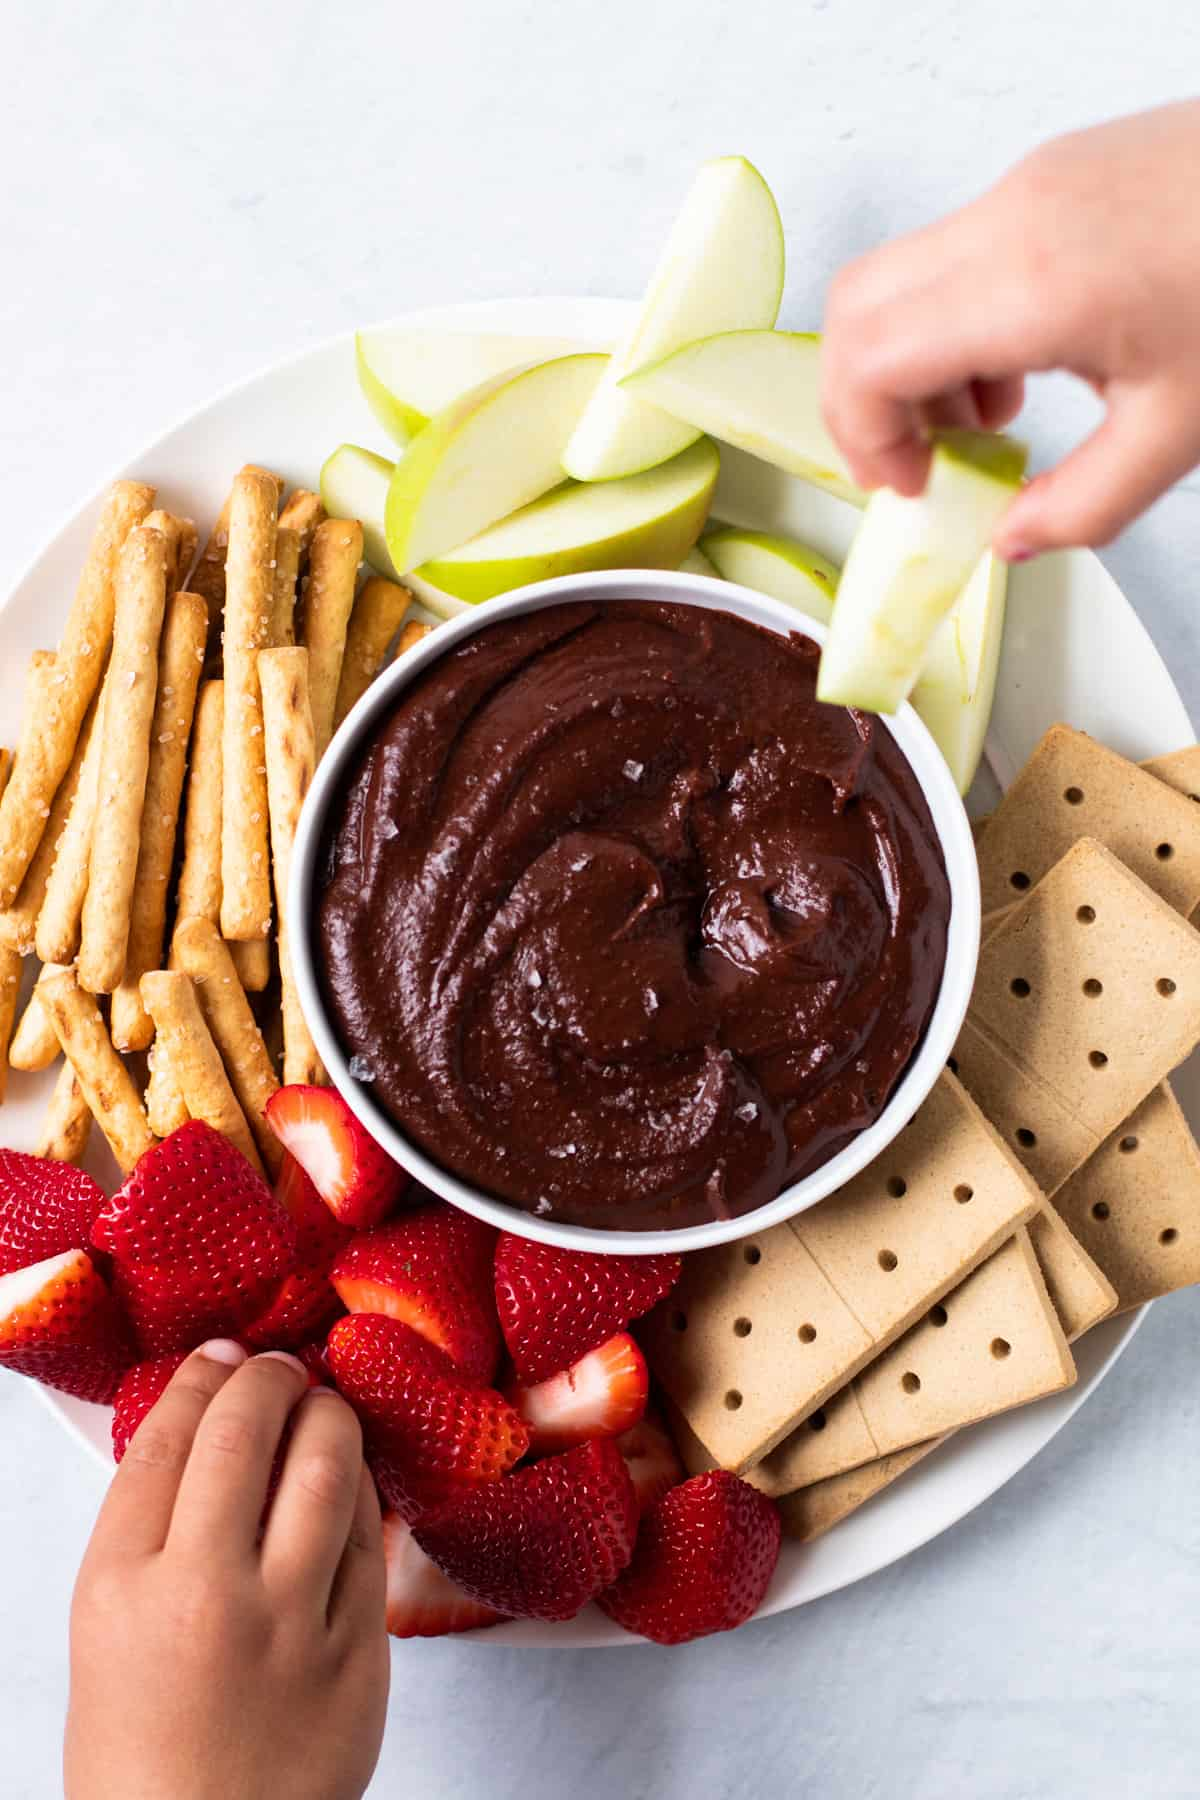 Little hands showing what to eat with chocolate hummus.